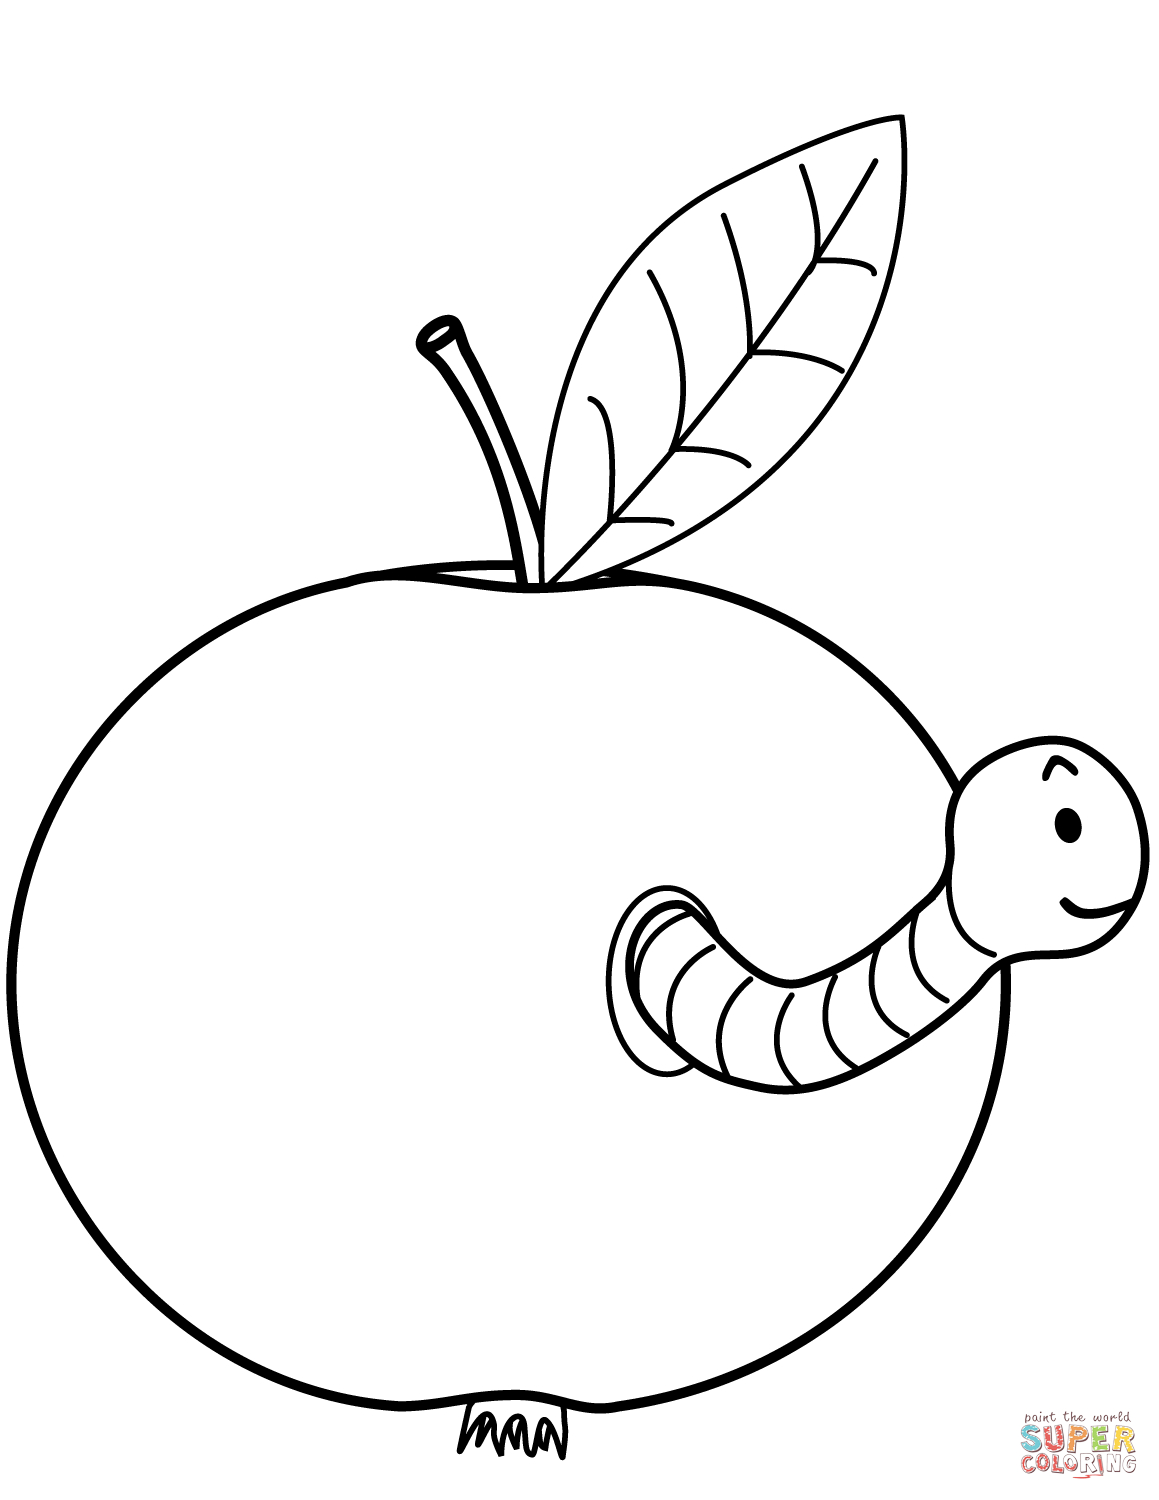 Worm Is Coming Out Of Apple Coloring Page | Free Printable Coloring - Free Printable Worm Worksheets